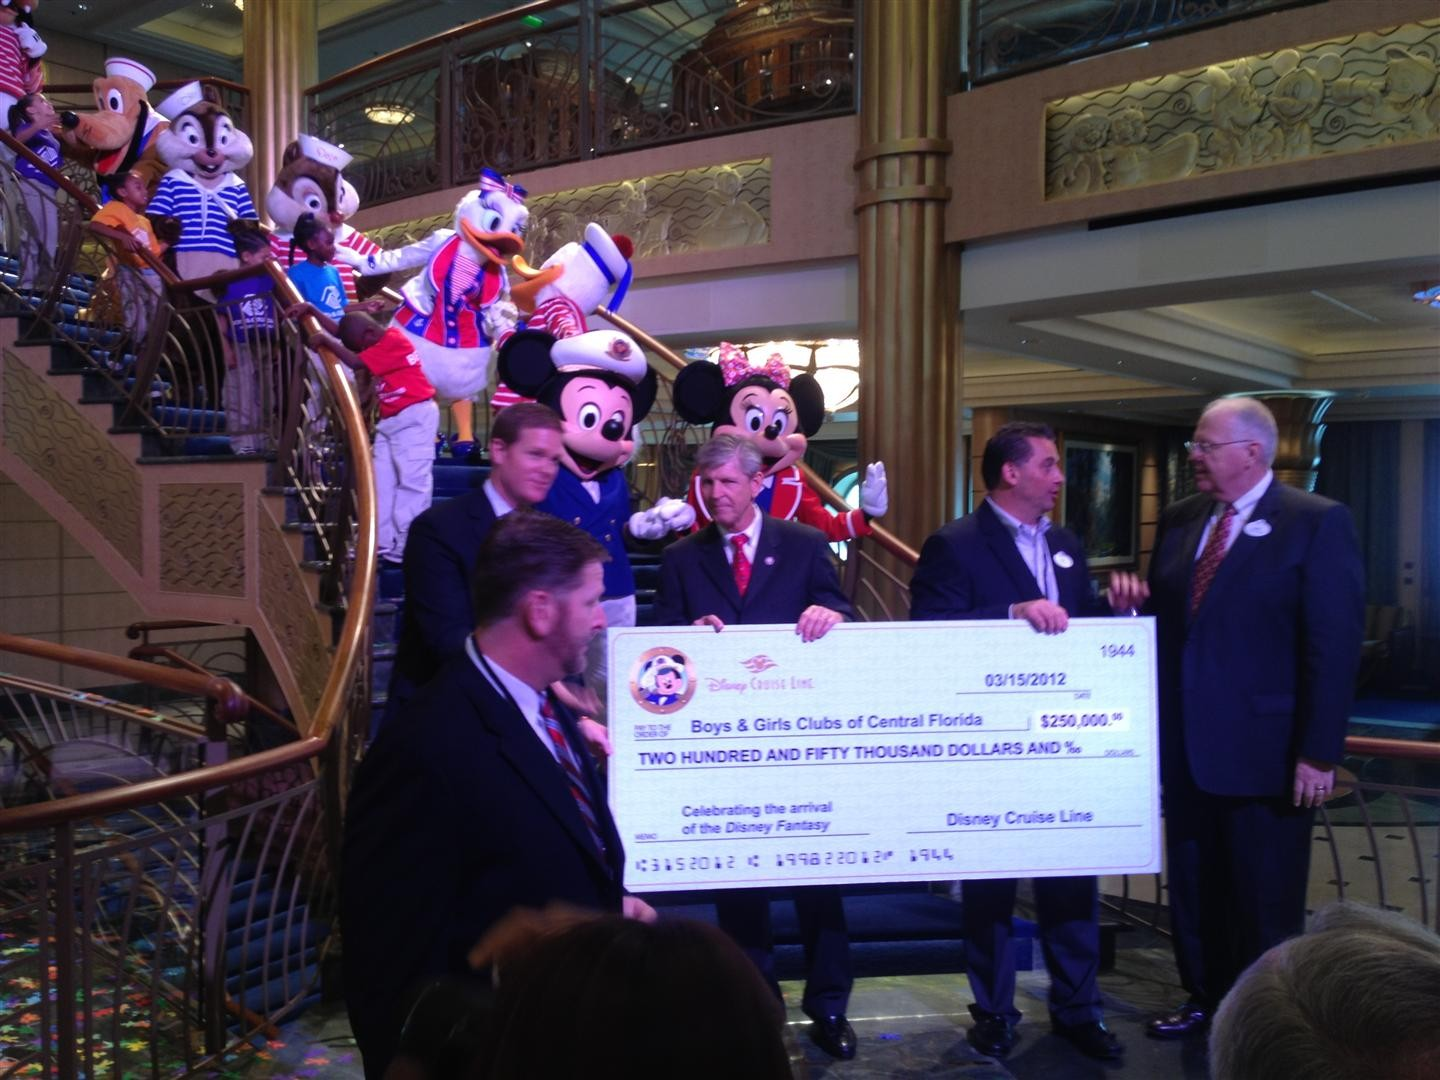 DCL president Karl Holz presents a $250,000 donation to Gary Cain, president of Boys and Girls Clubs of Central Florida (3/12/12)